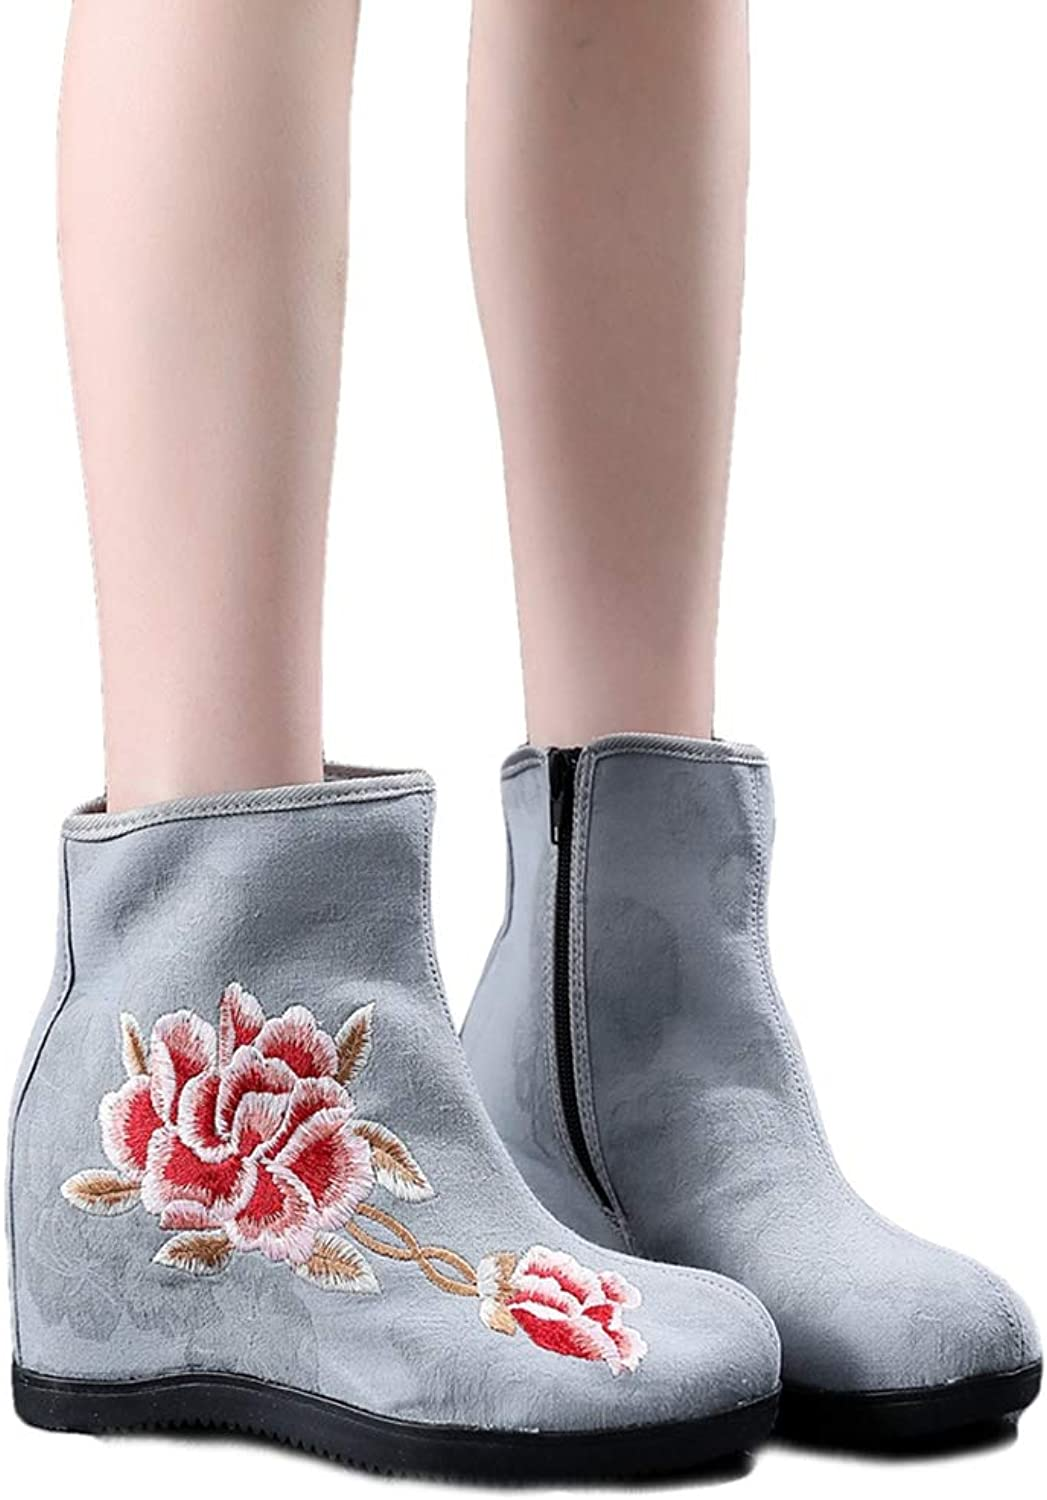 Kyle Walsh Pa Women Embroidered Ankle Booties Hidden Wedge Ladies Soft Comfortable Autumn Winter Boots